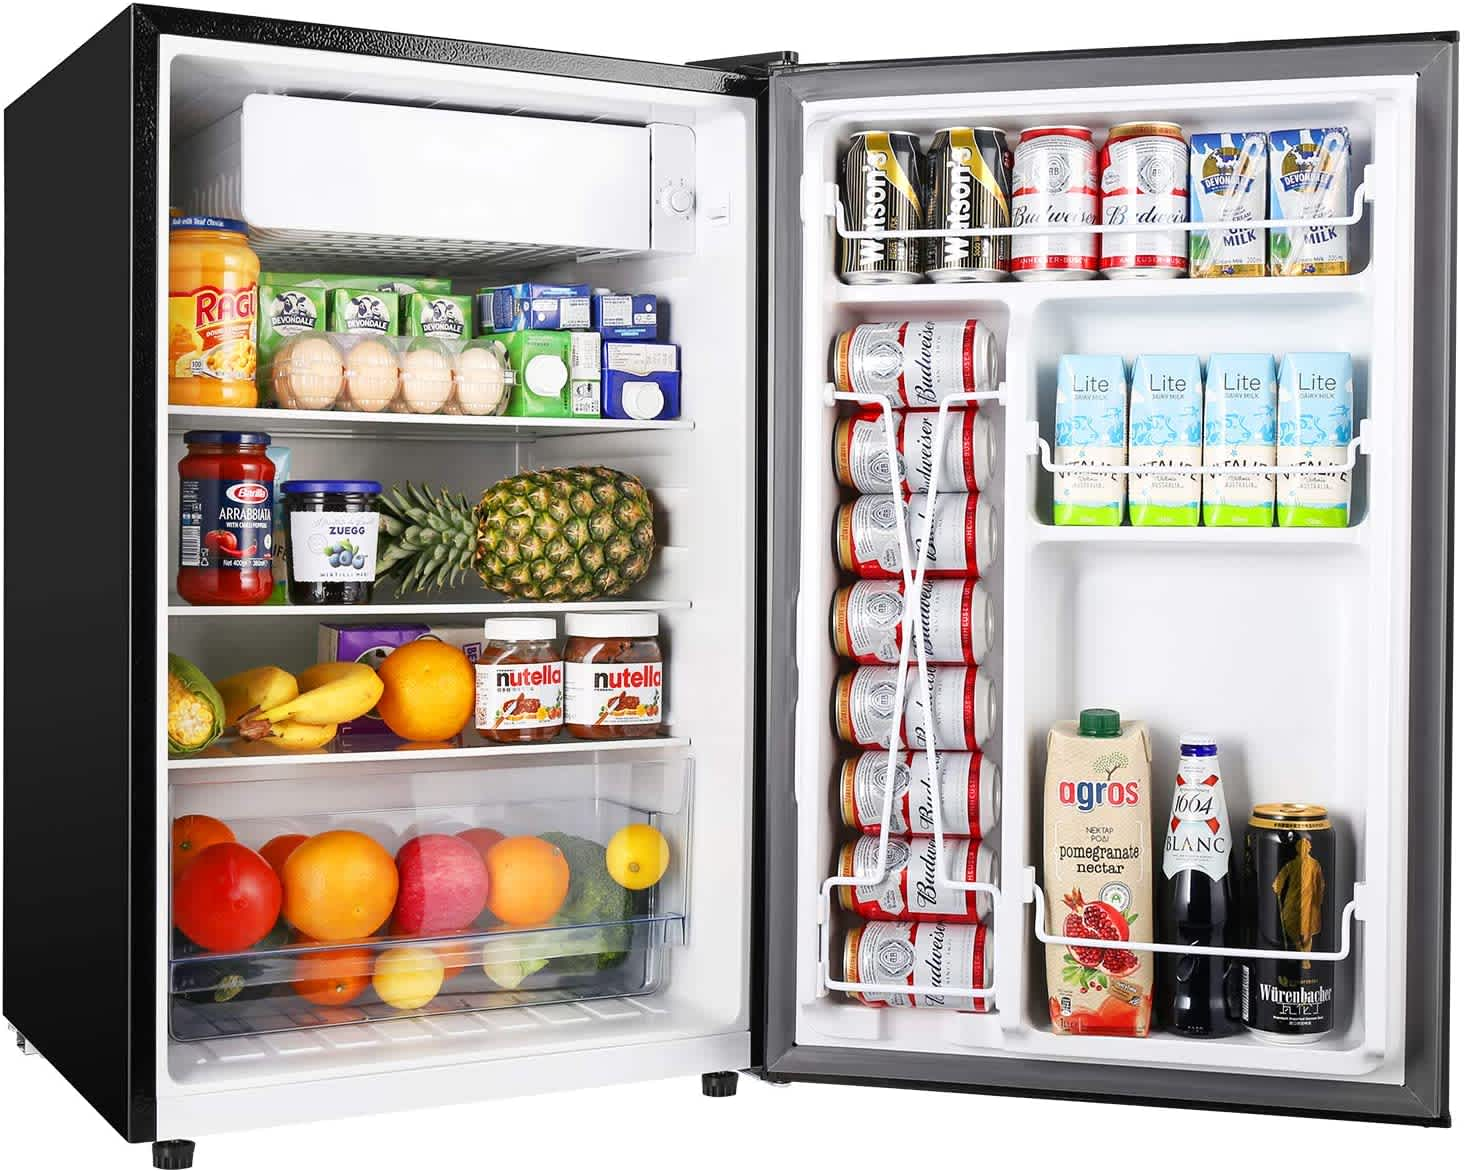 Teccpo 4.5-Cu. Ft. Mini Fridge with Freezer